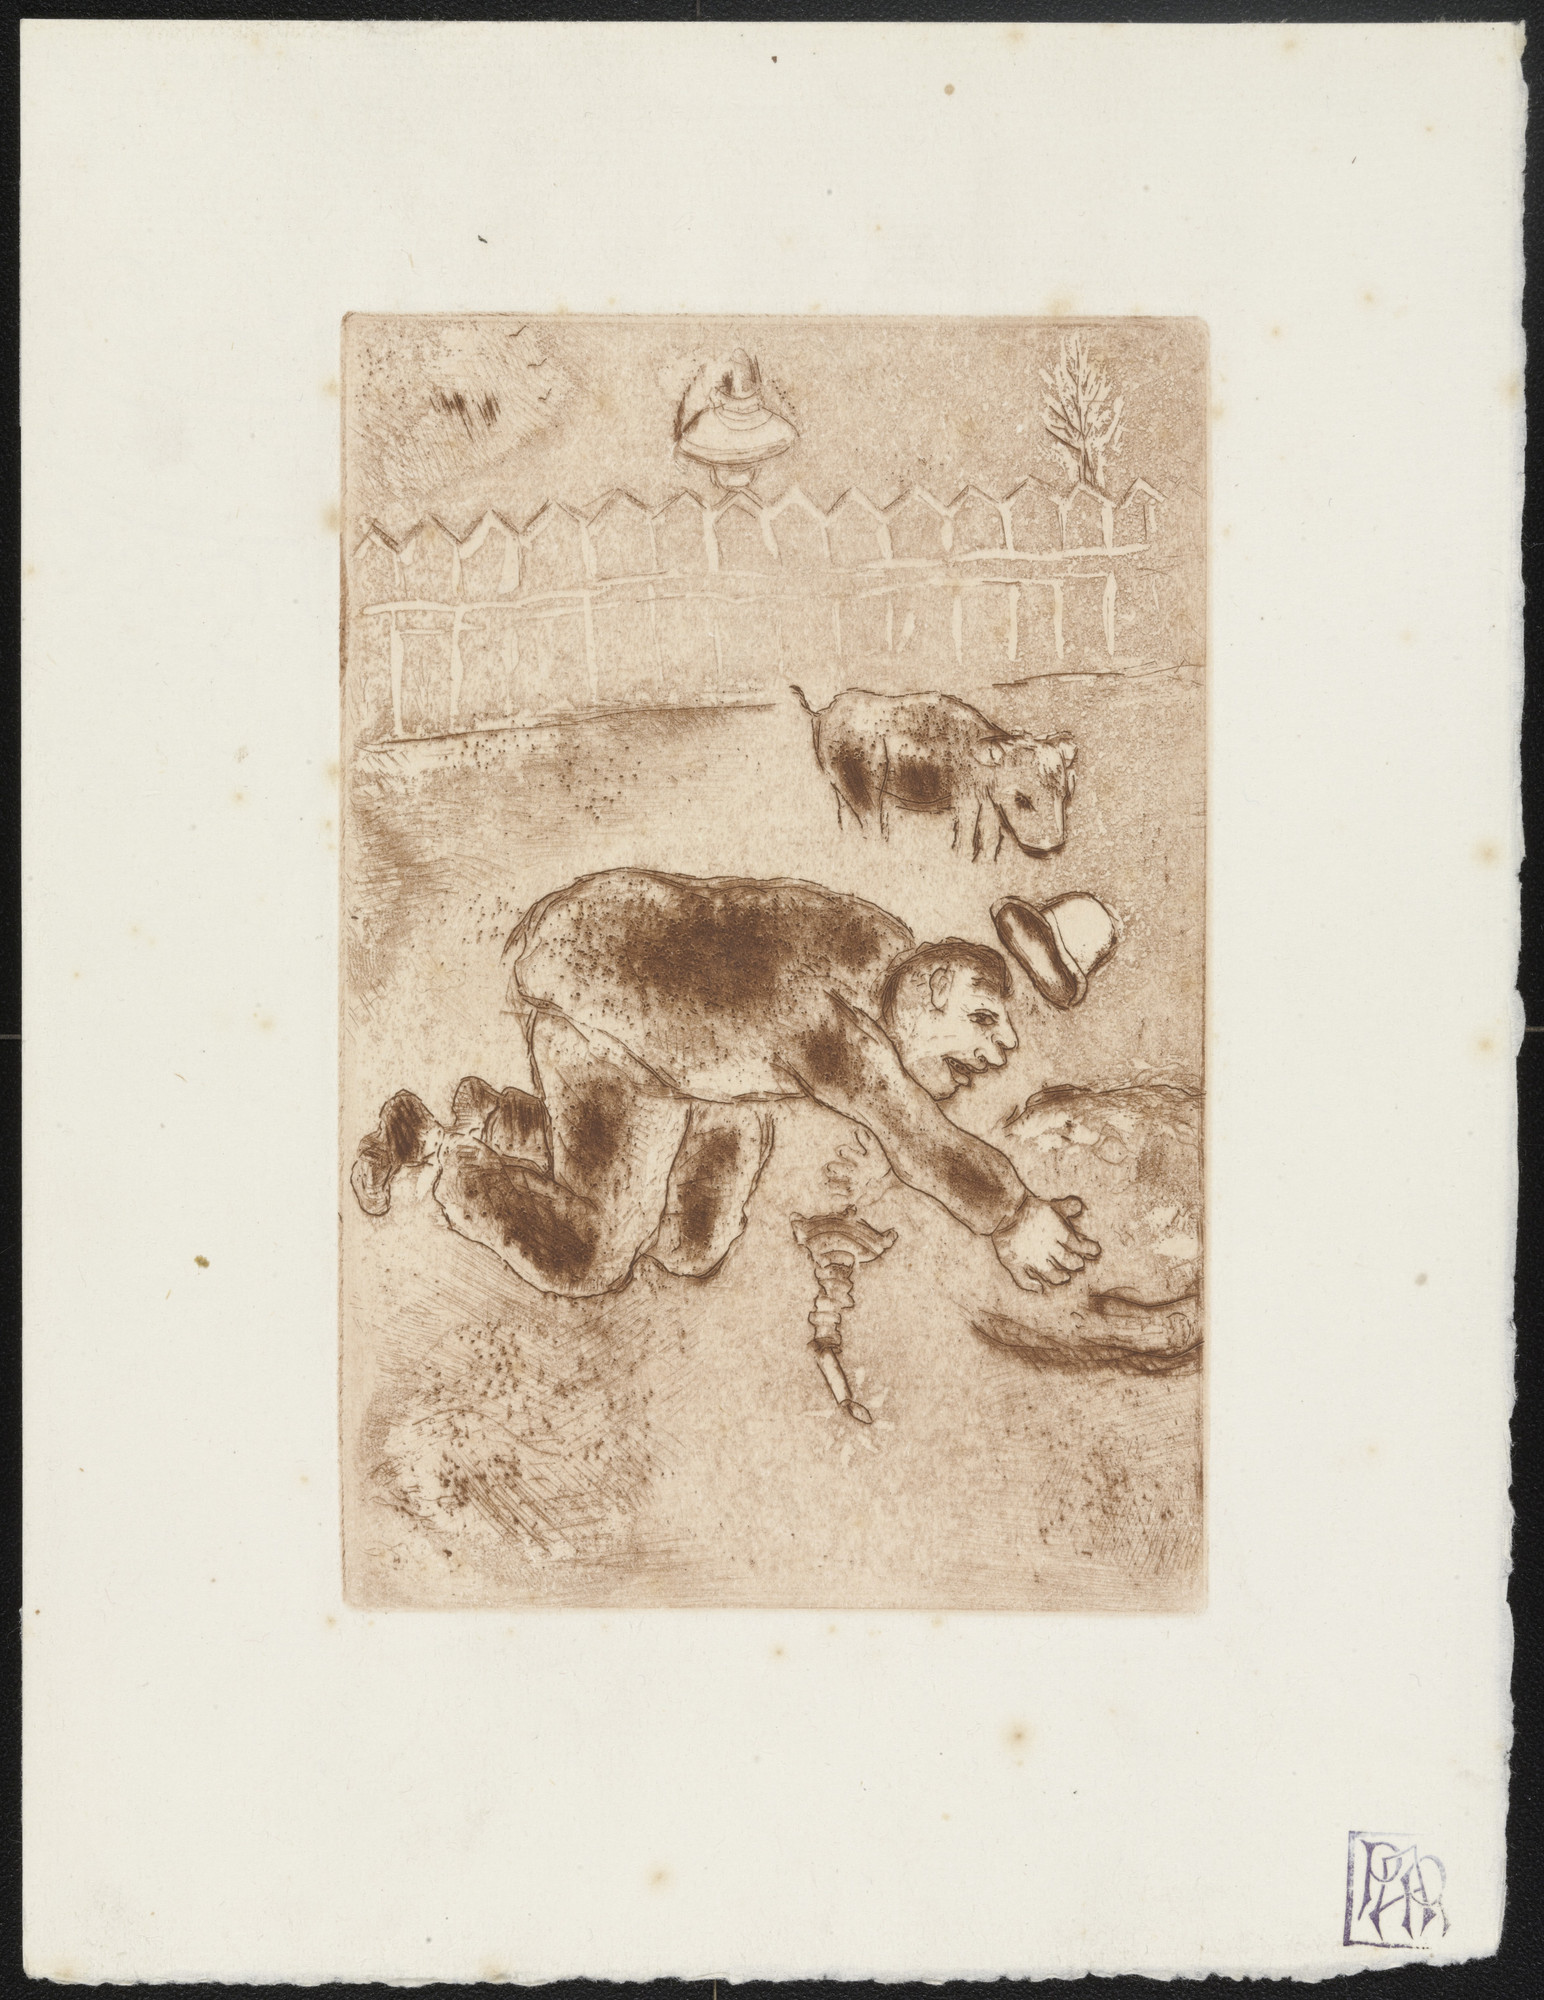 Marc Chagall. Avarice II (L'Avarice II) from The Seven Deadly Sins (Les Sept péchés capitaux). 1925, published 1926